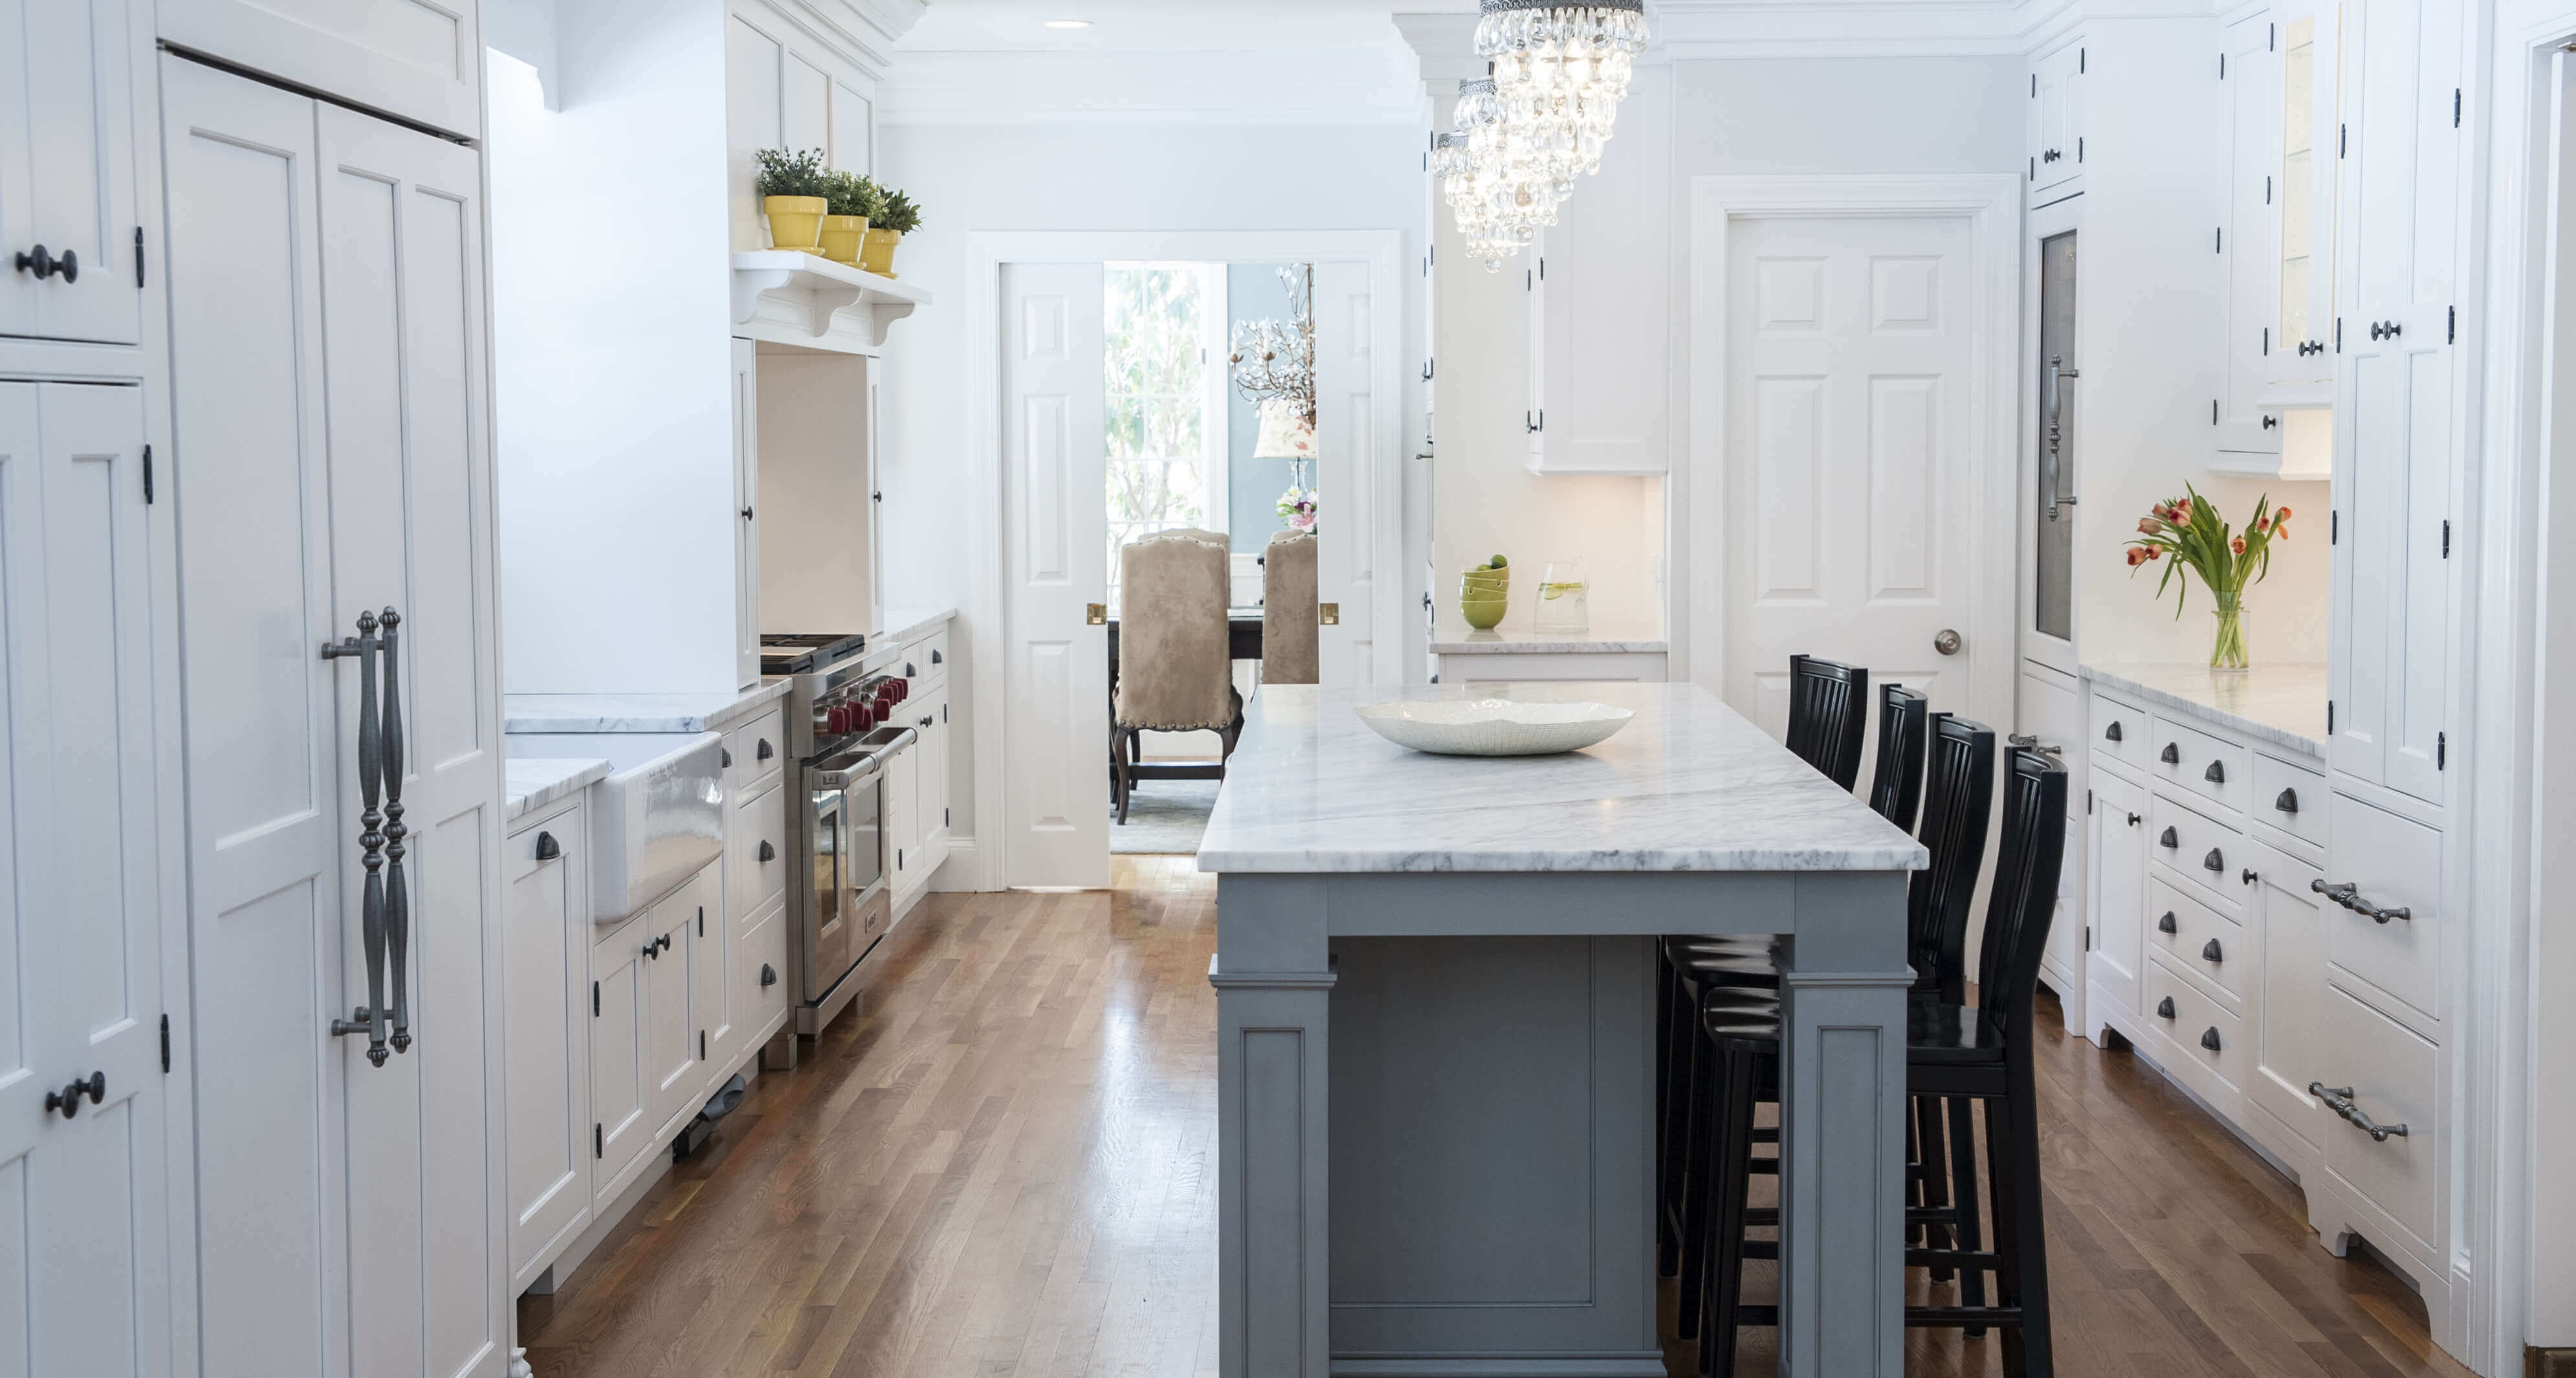 Kitchen Design And Build Center in Westborough Massachusetts